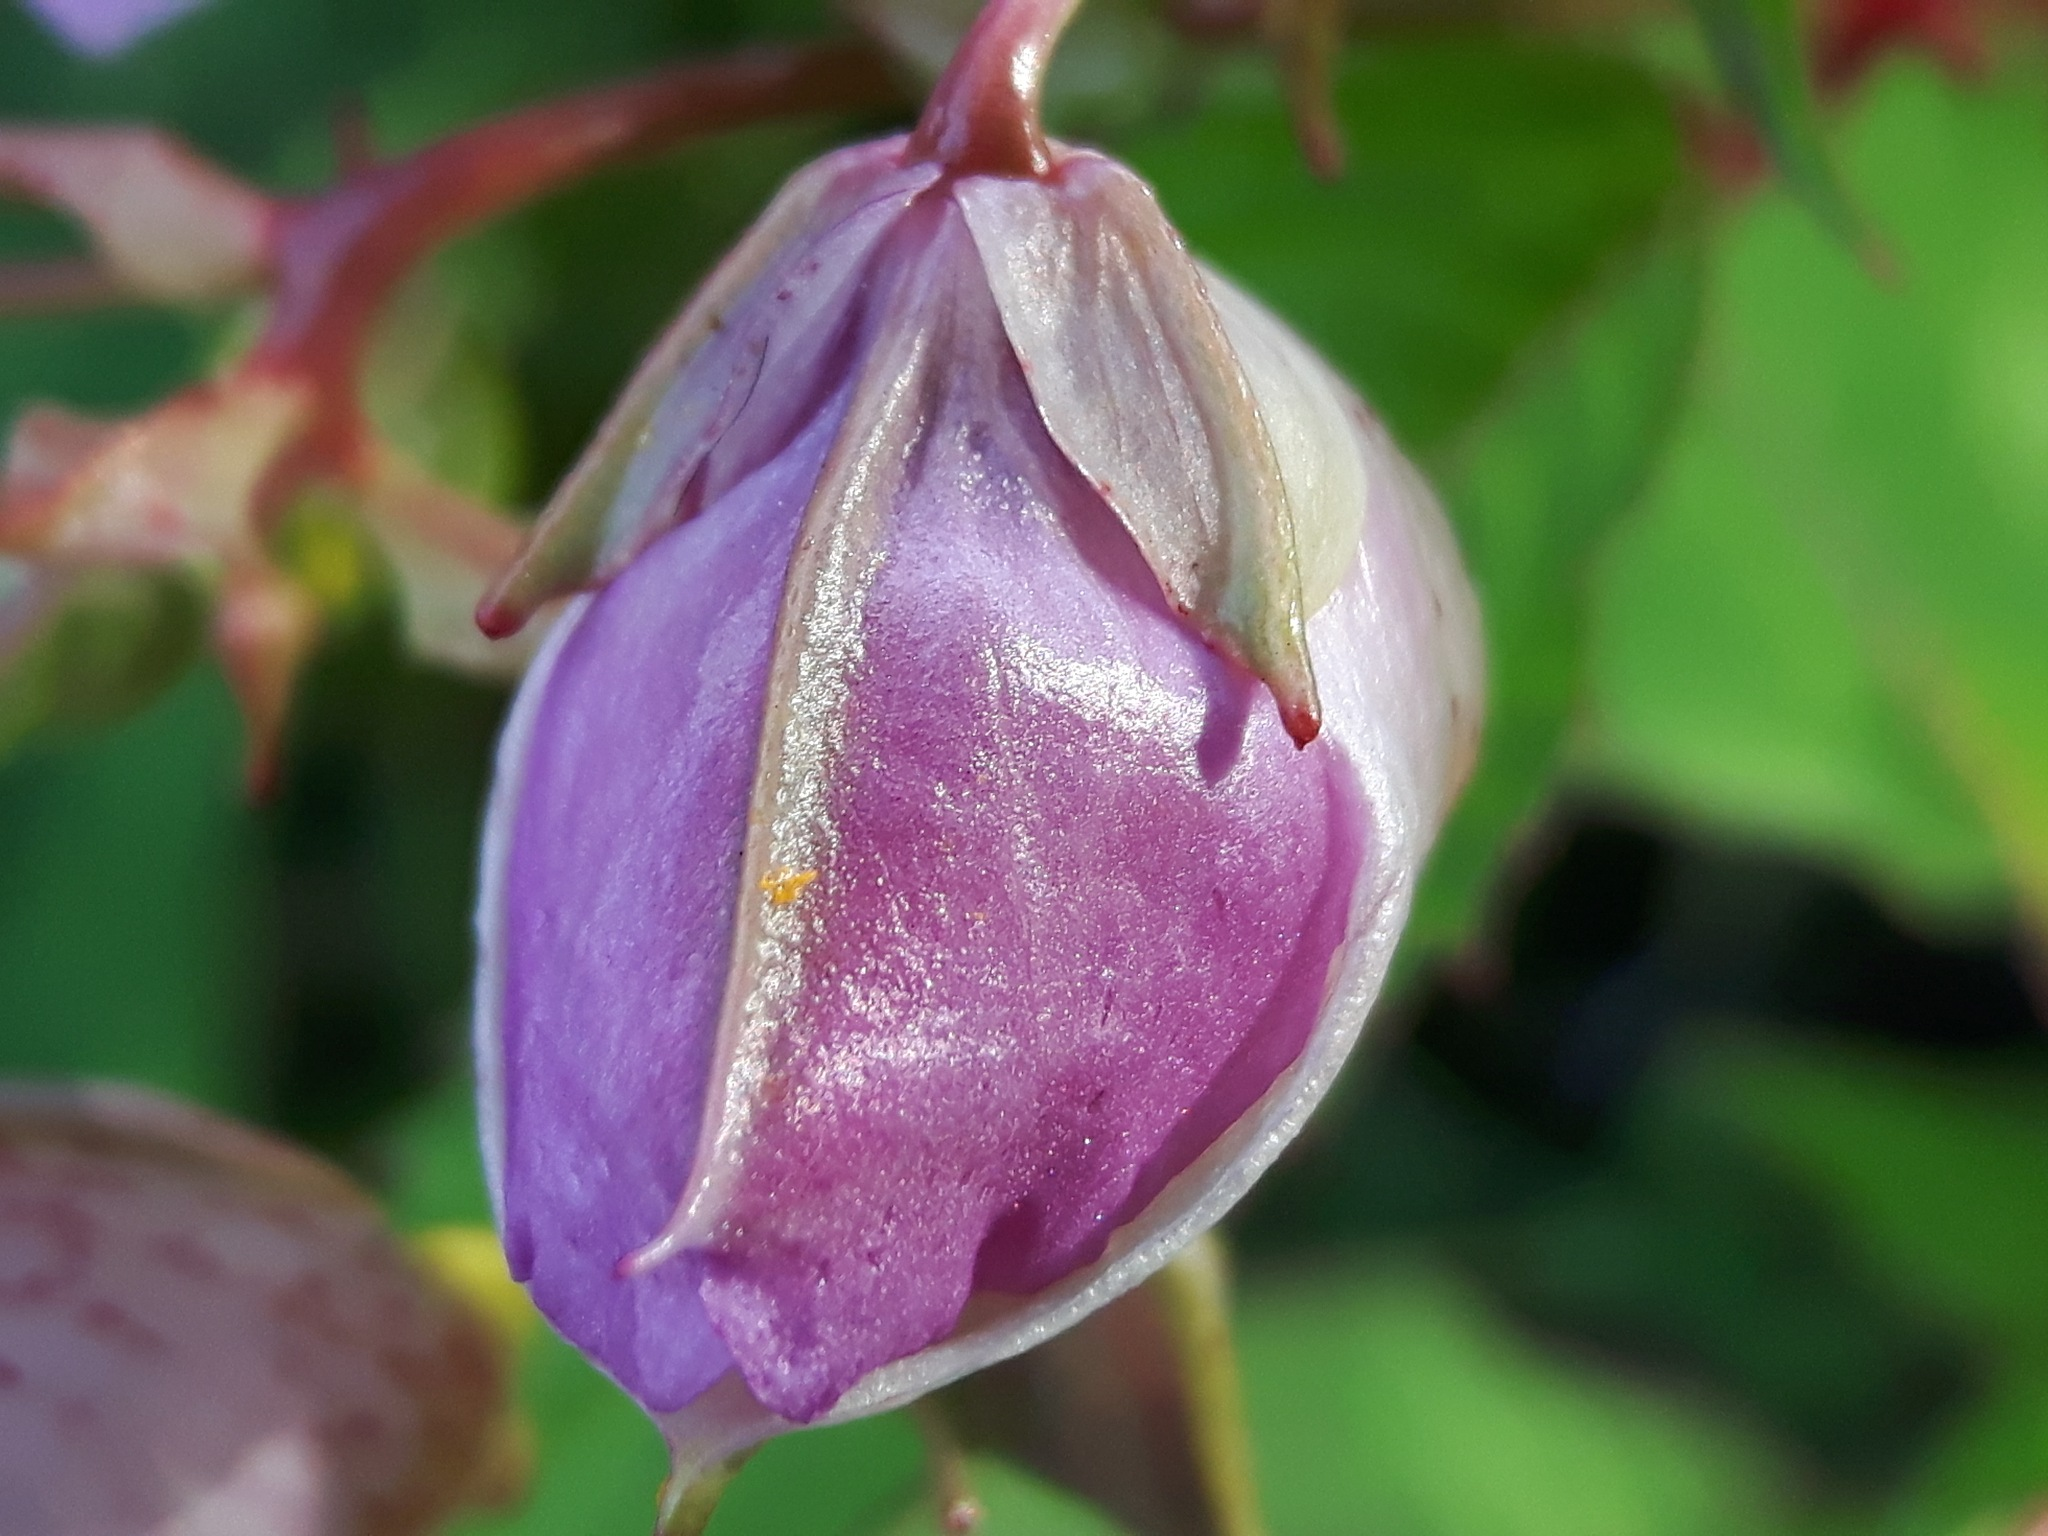 A bud with intention to open up by Mevludin_Hasanovic